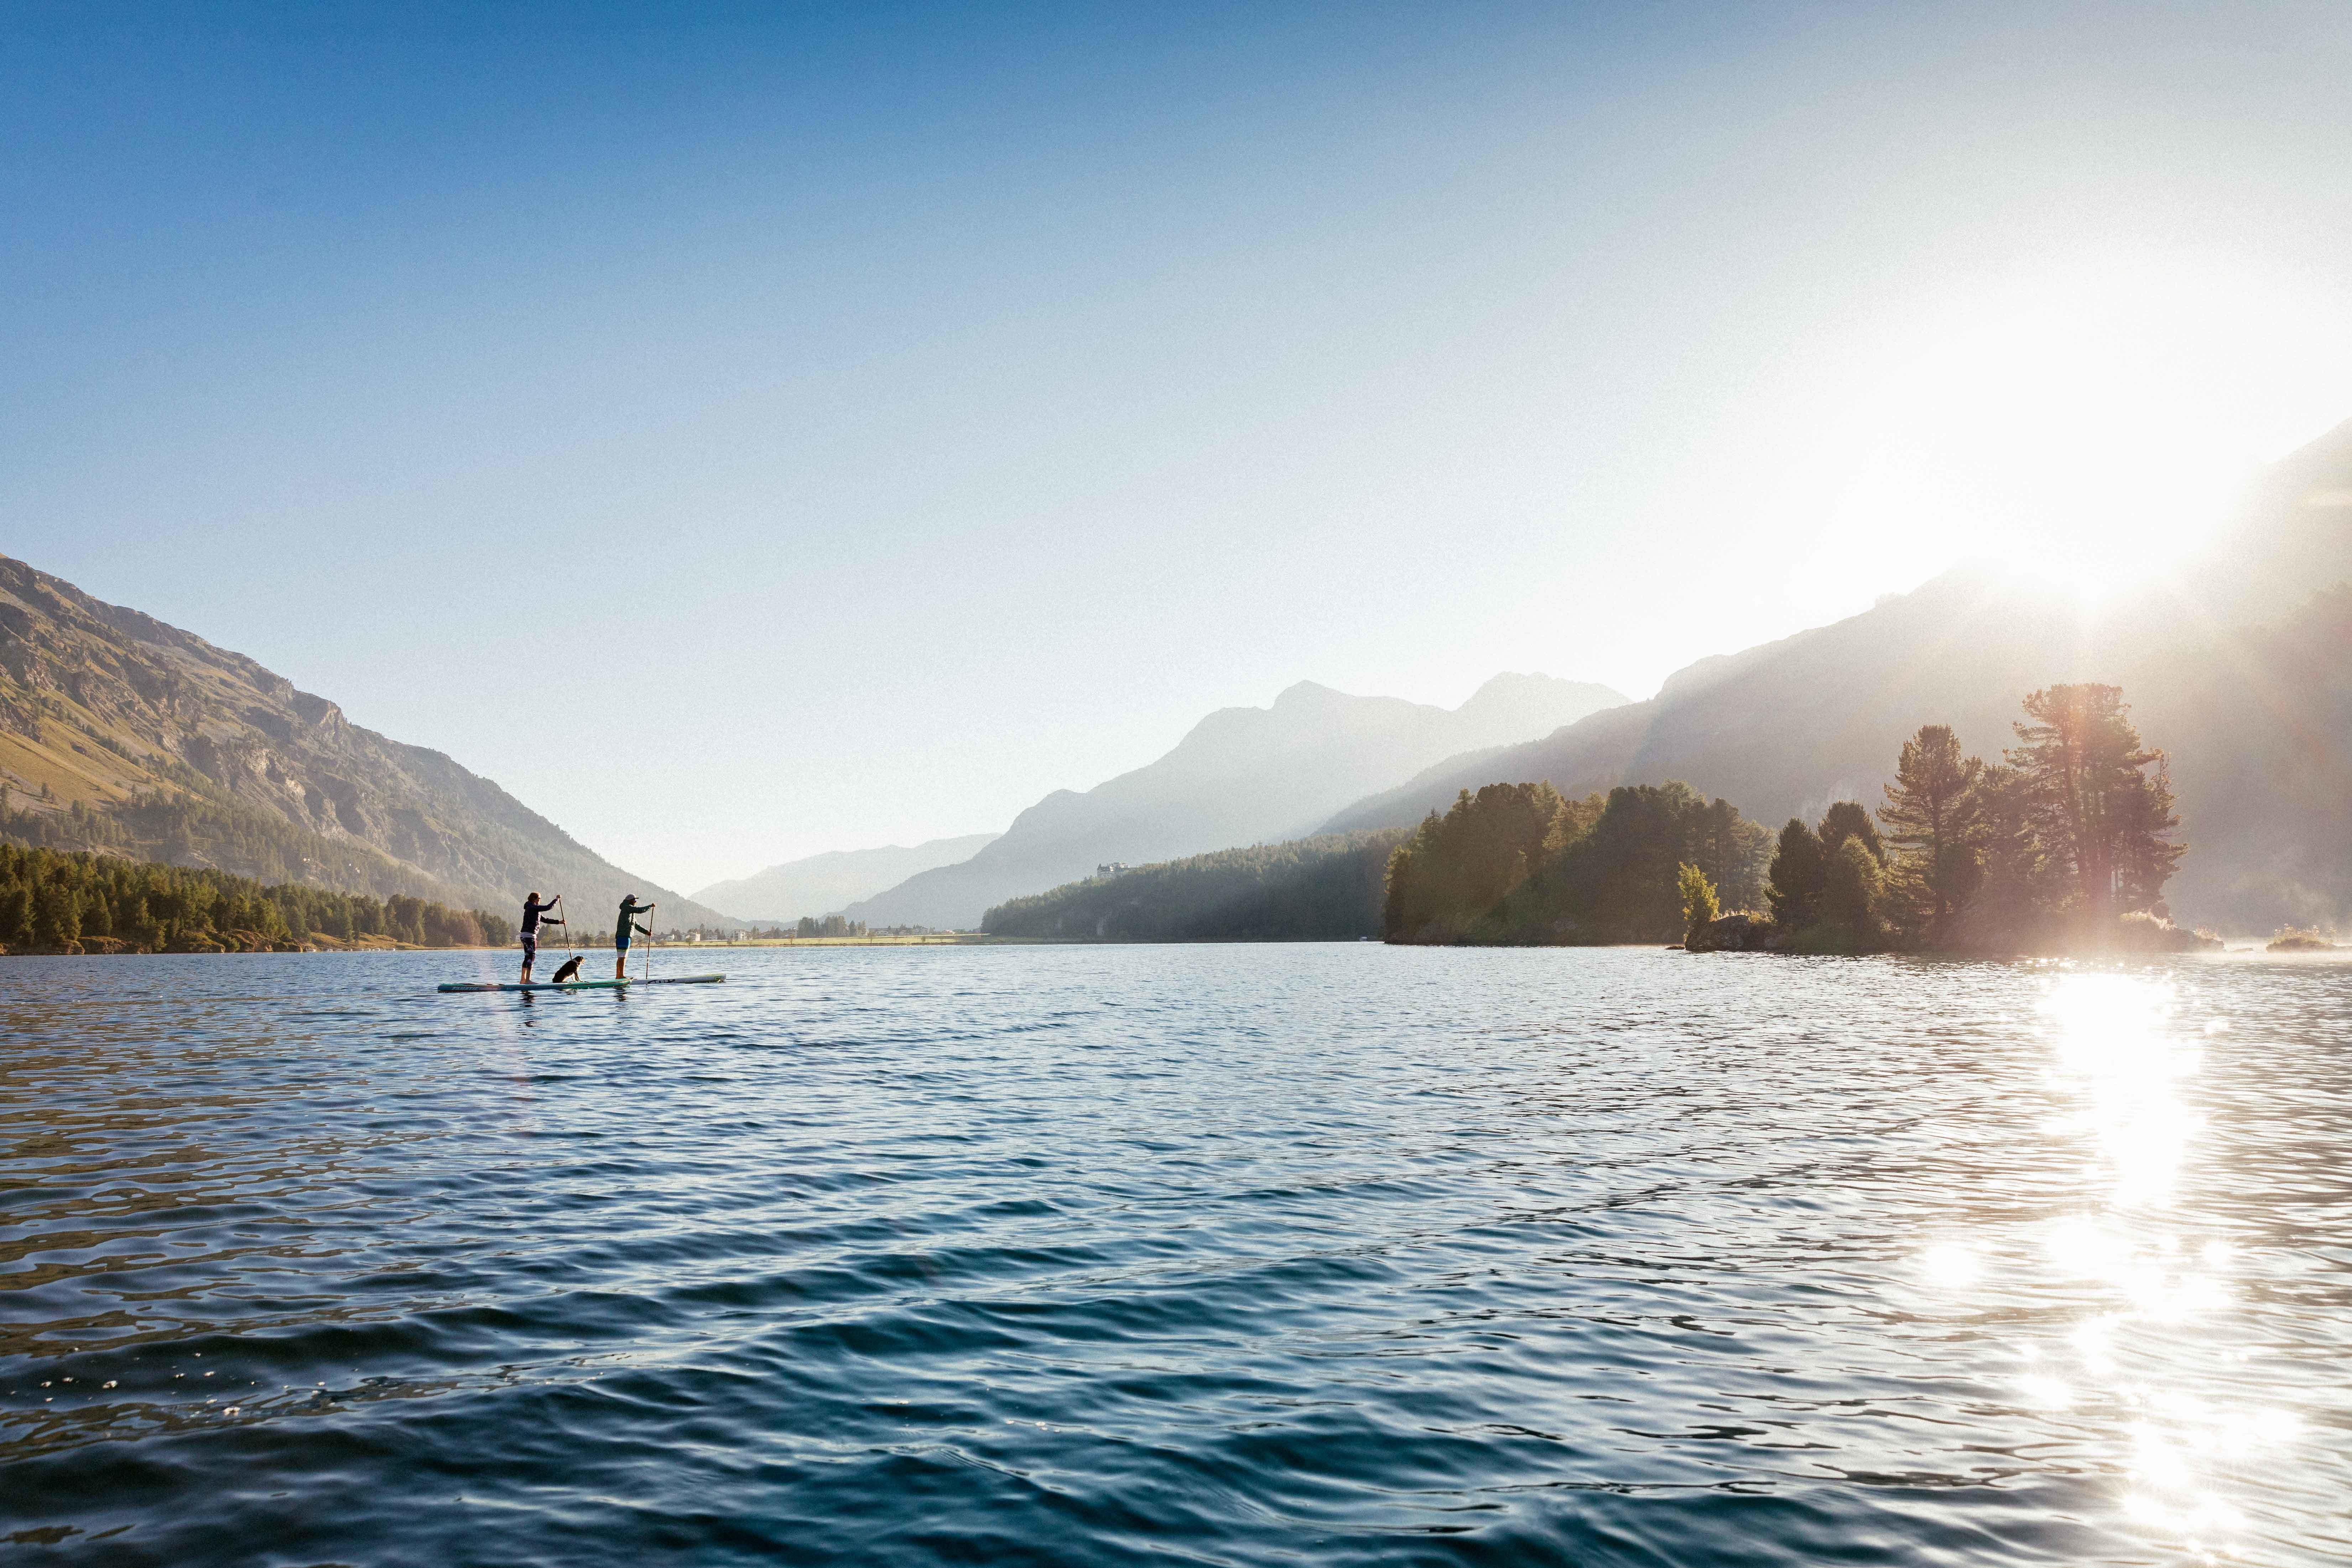 Stand up paddling in stunning scenery